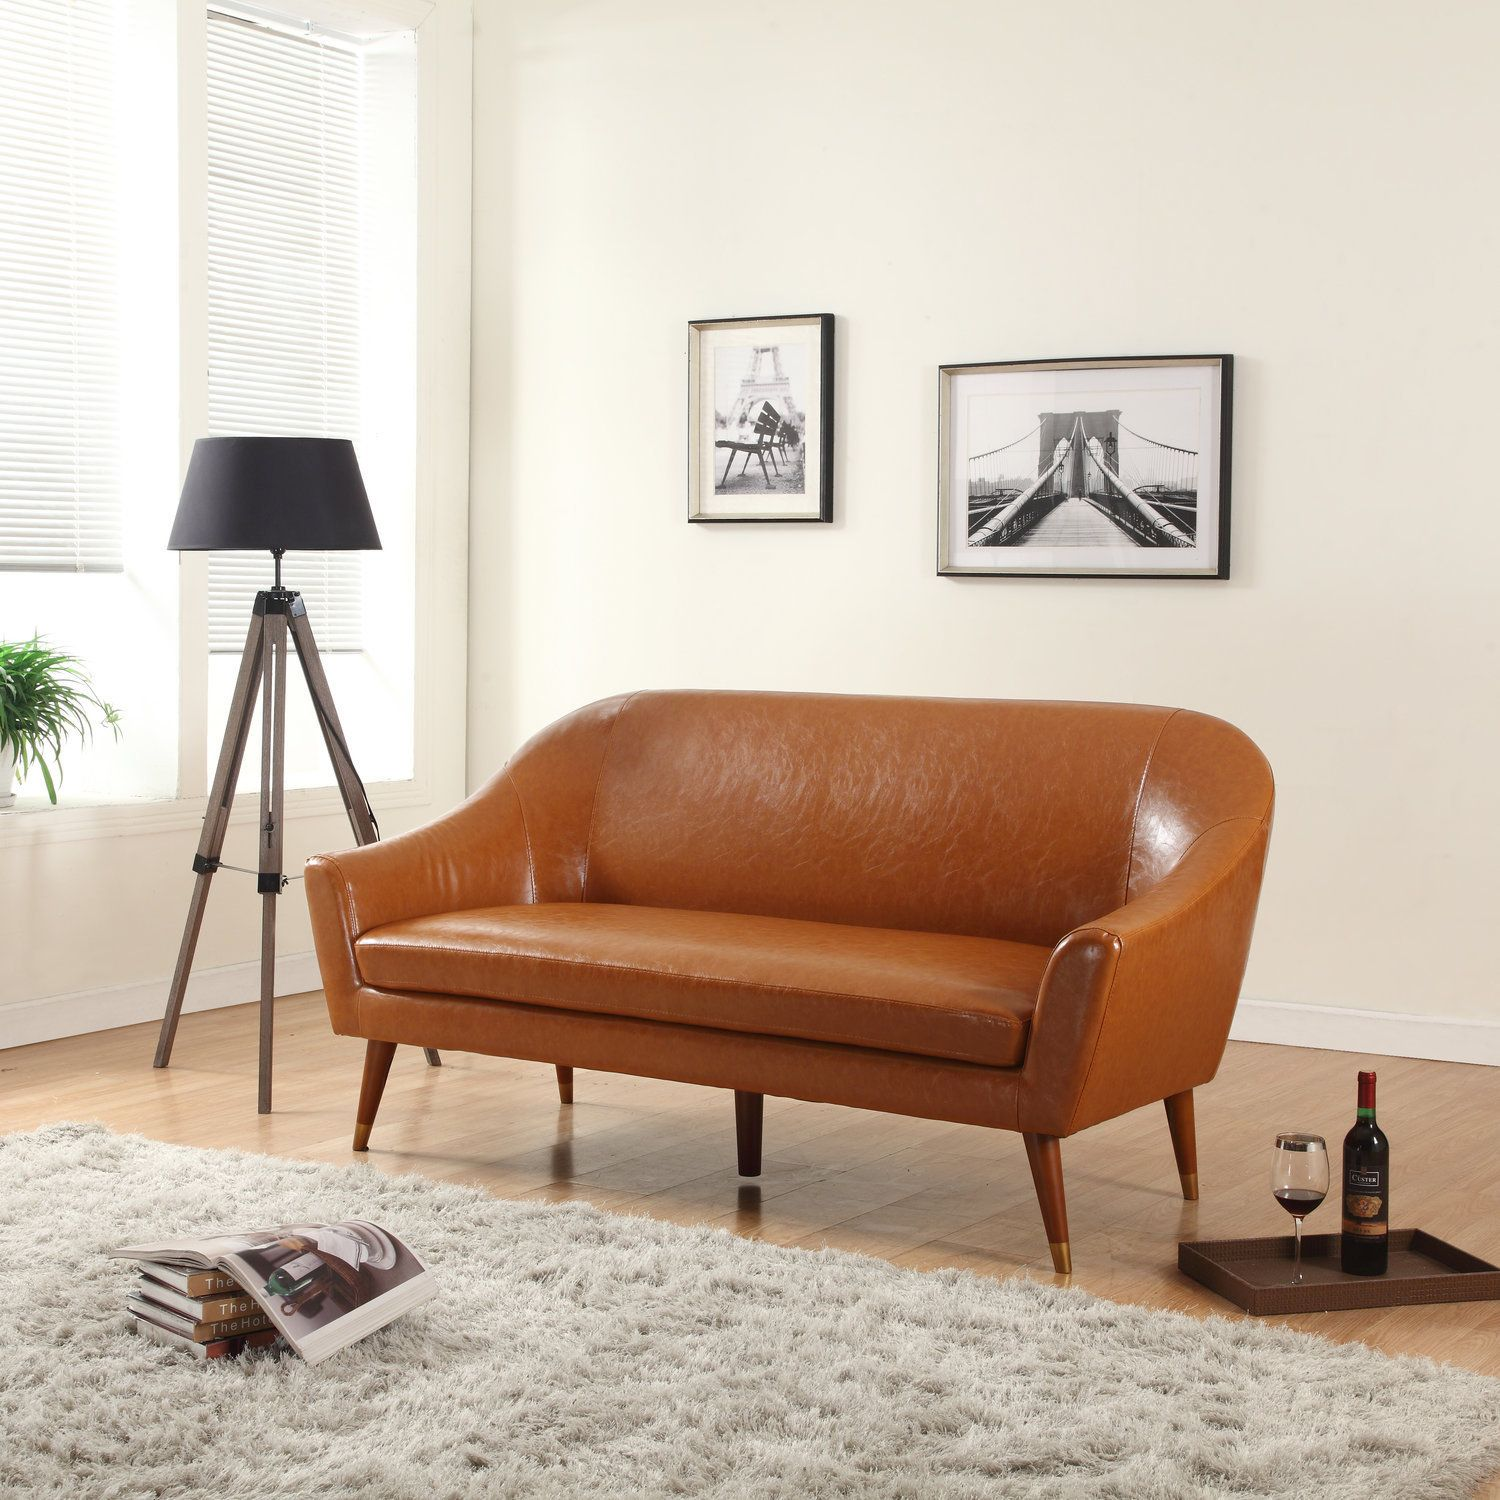 Groovy This Modern Mid Century Style Sofa Features Soft Durable Evergreenethics Interior Chair Design Evergreenethicsorg